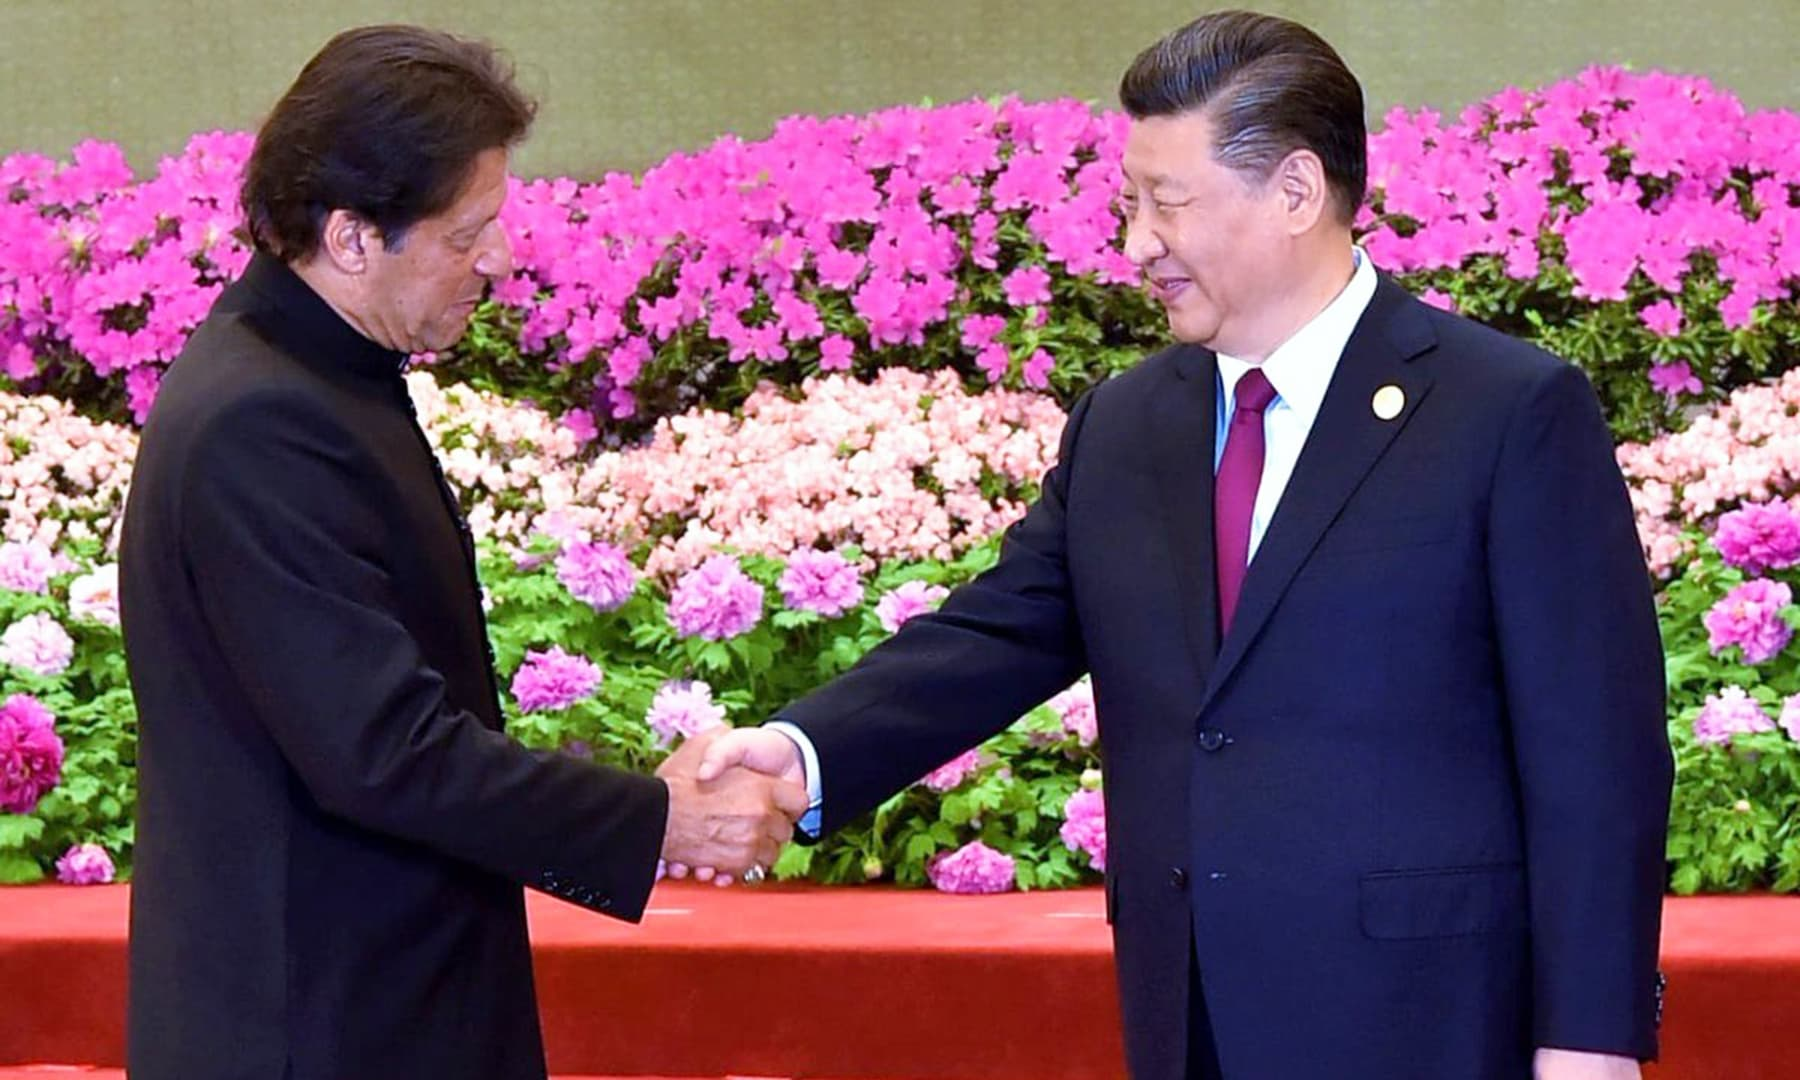 Prime Minister Imran Khan and Chinese President Xi Jinping shake hands prior to the welcome banquet at the Great Hall of the People, in Beijing. — PID